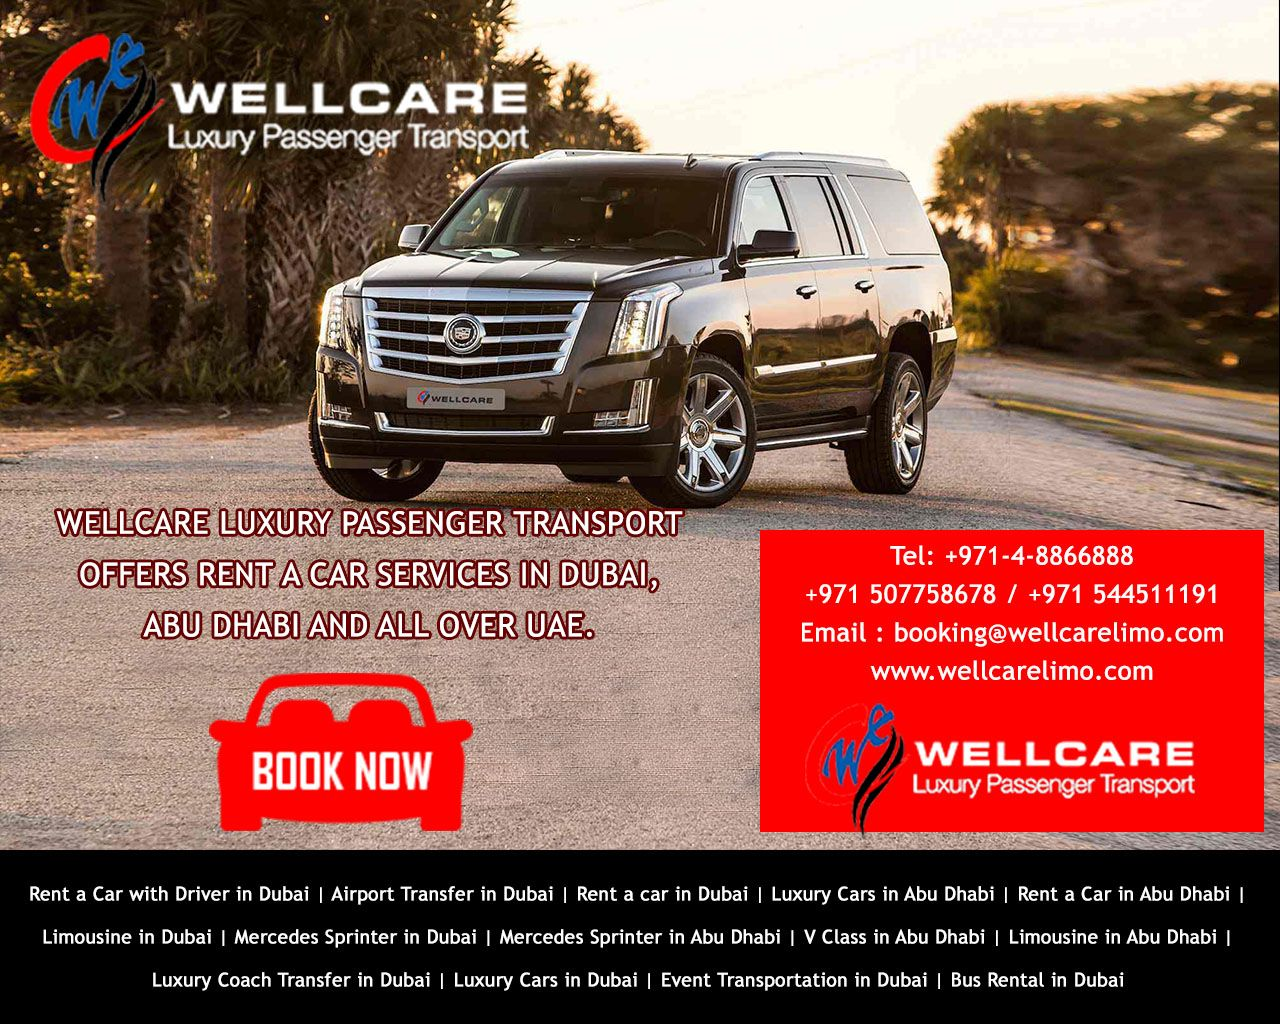 Wellcare Luxury Passenger Transport offers rent a car